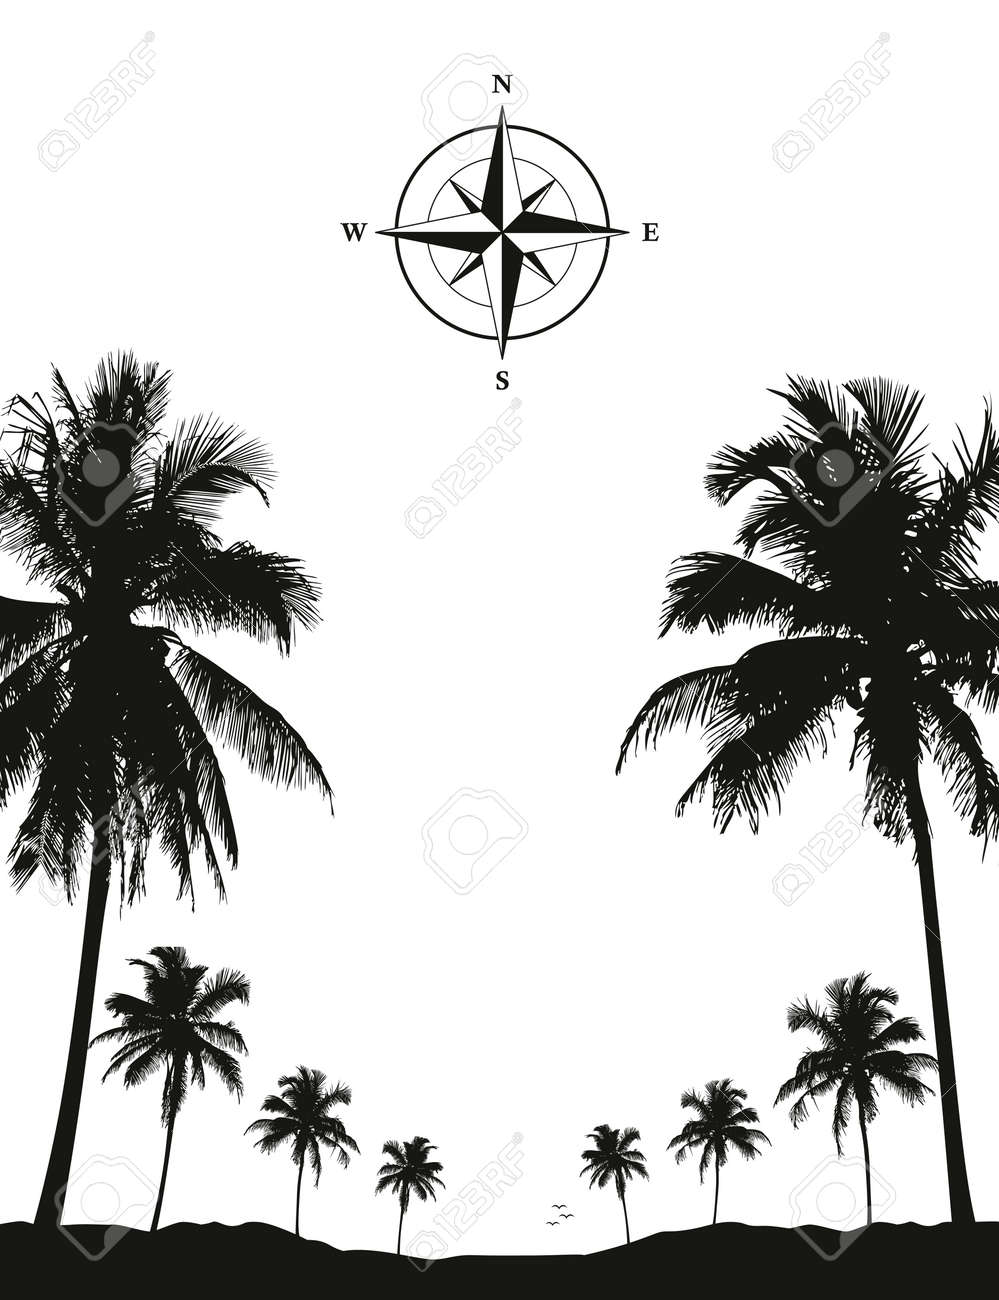 luxury holiday palm tree silhouette background black and white - 169232449